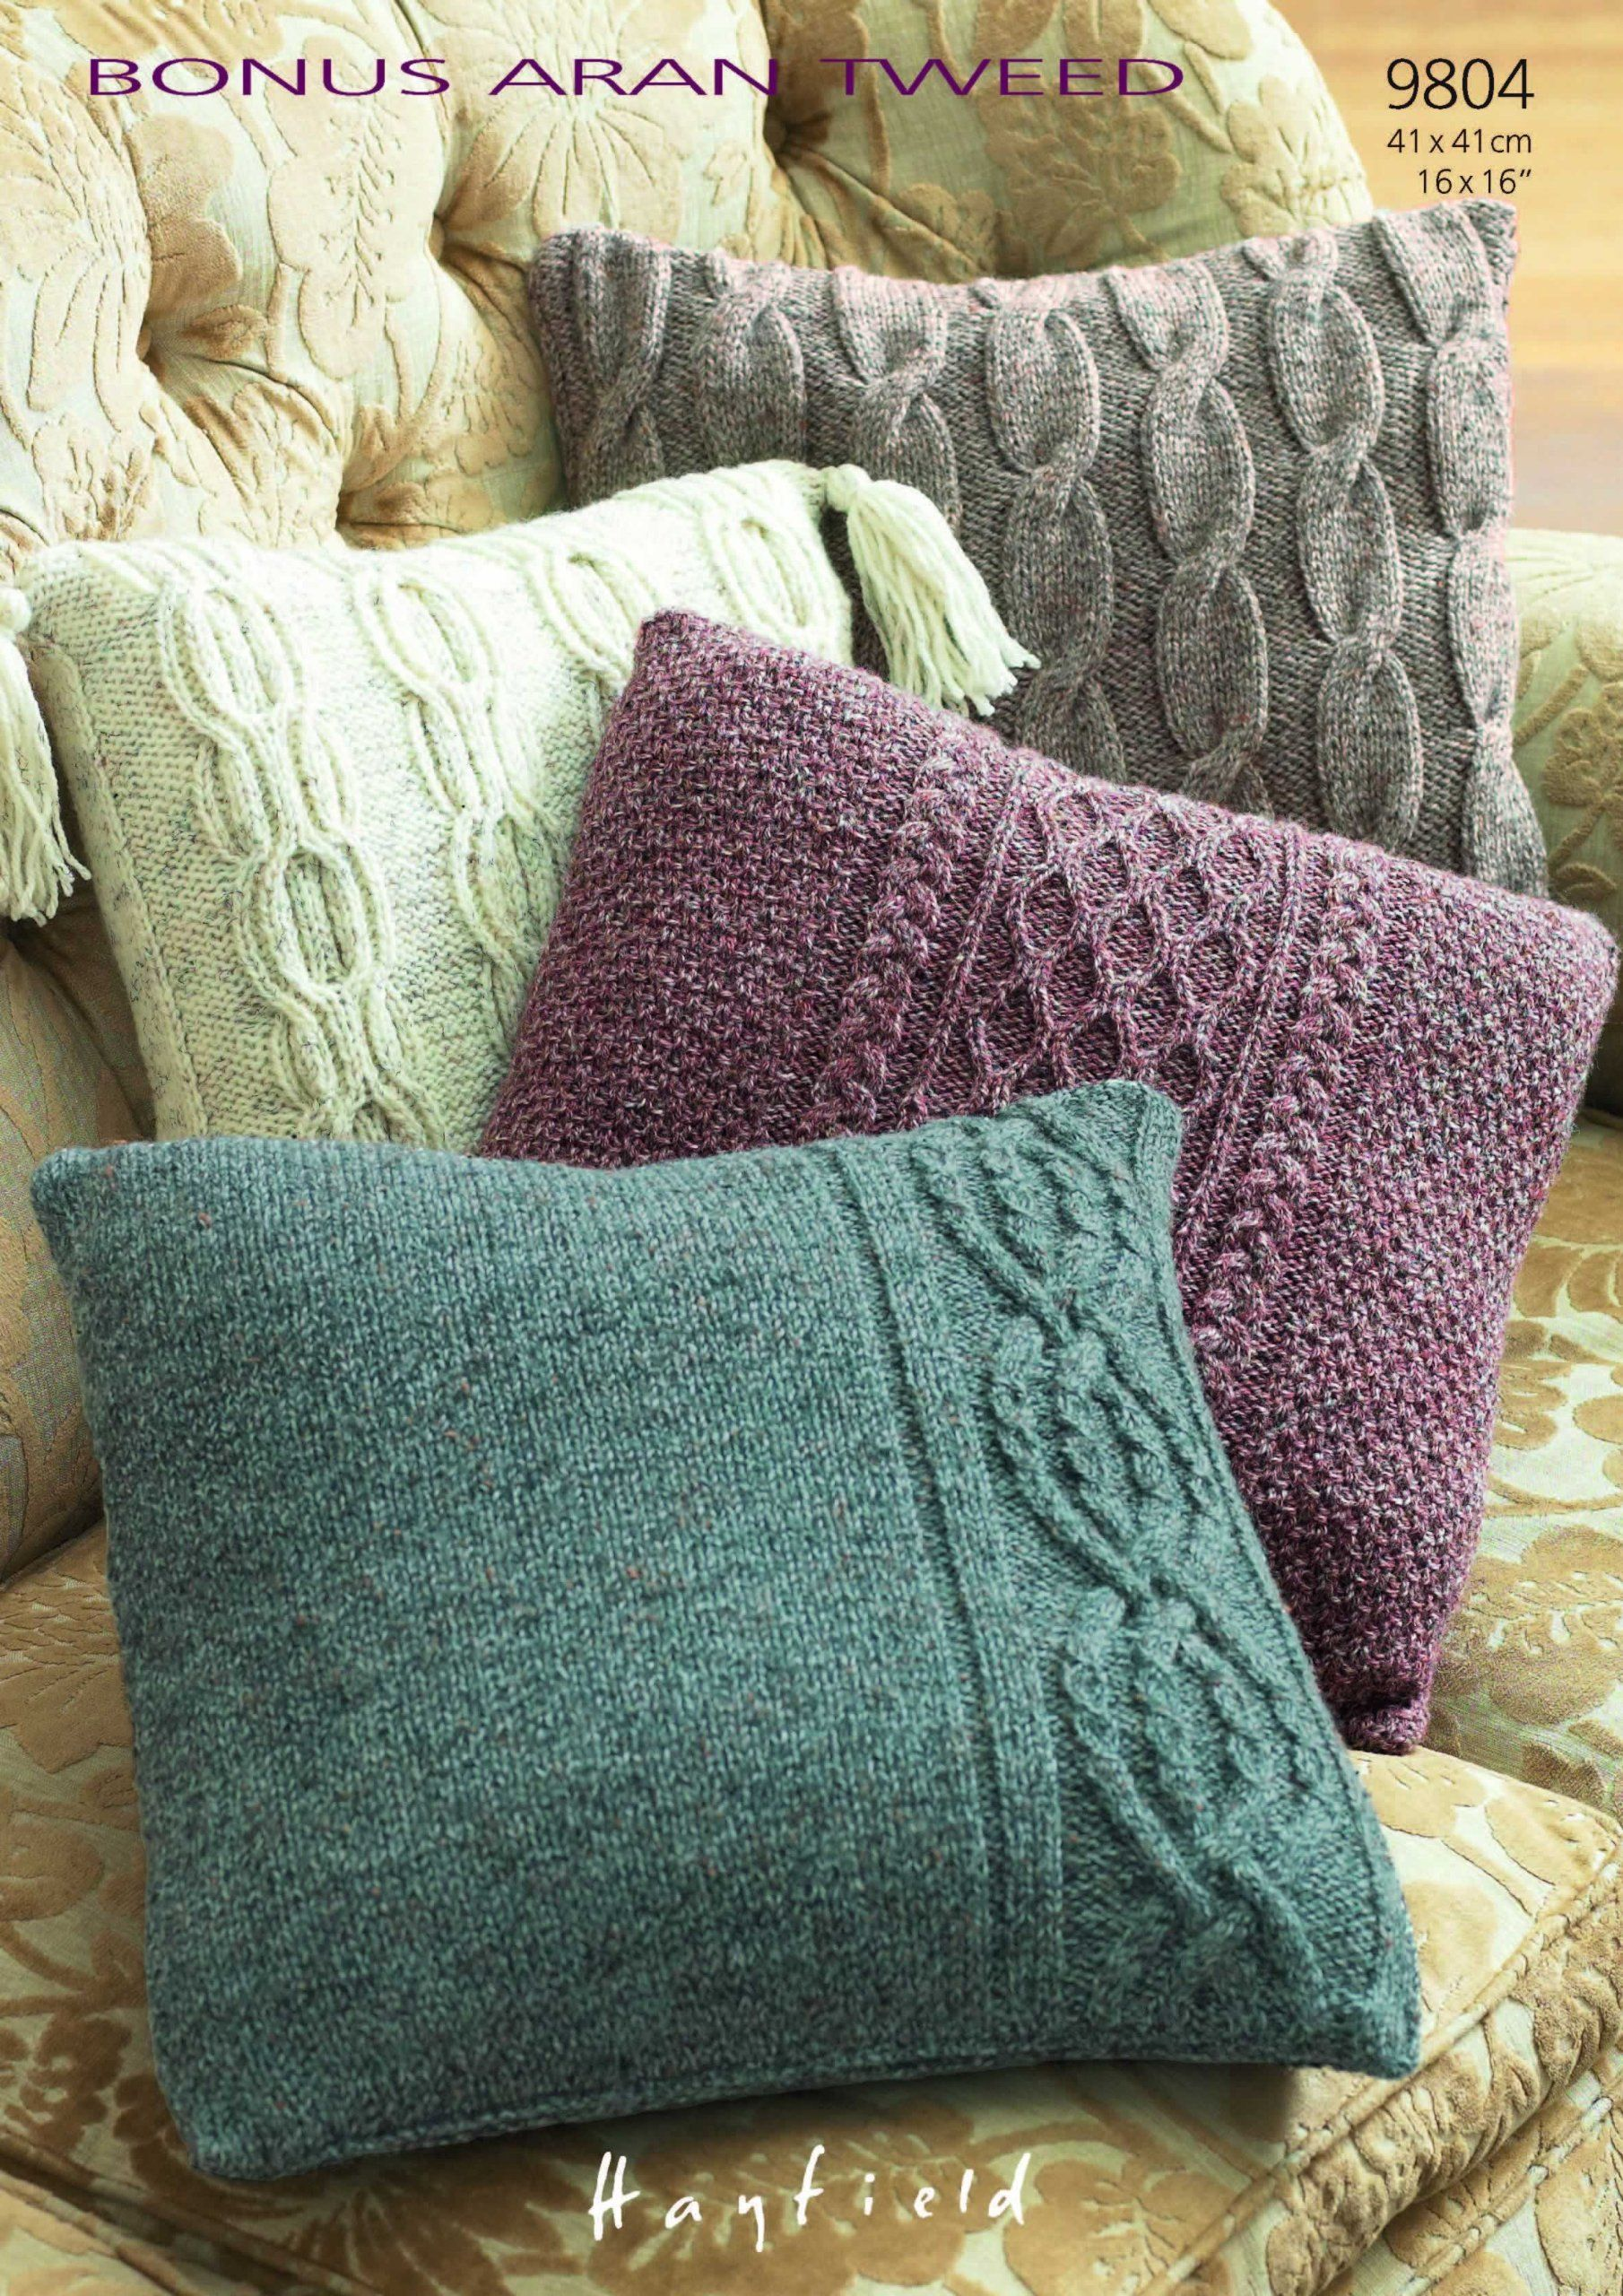 Sirdar Accessories Bonus Aran Tweed Cushions Knitting Pattern 9804 ...